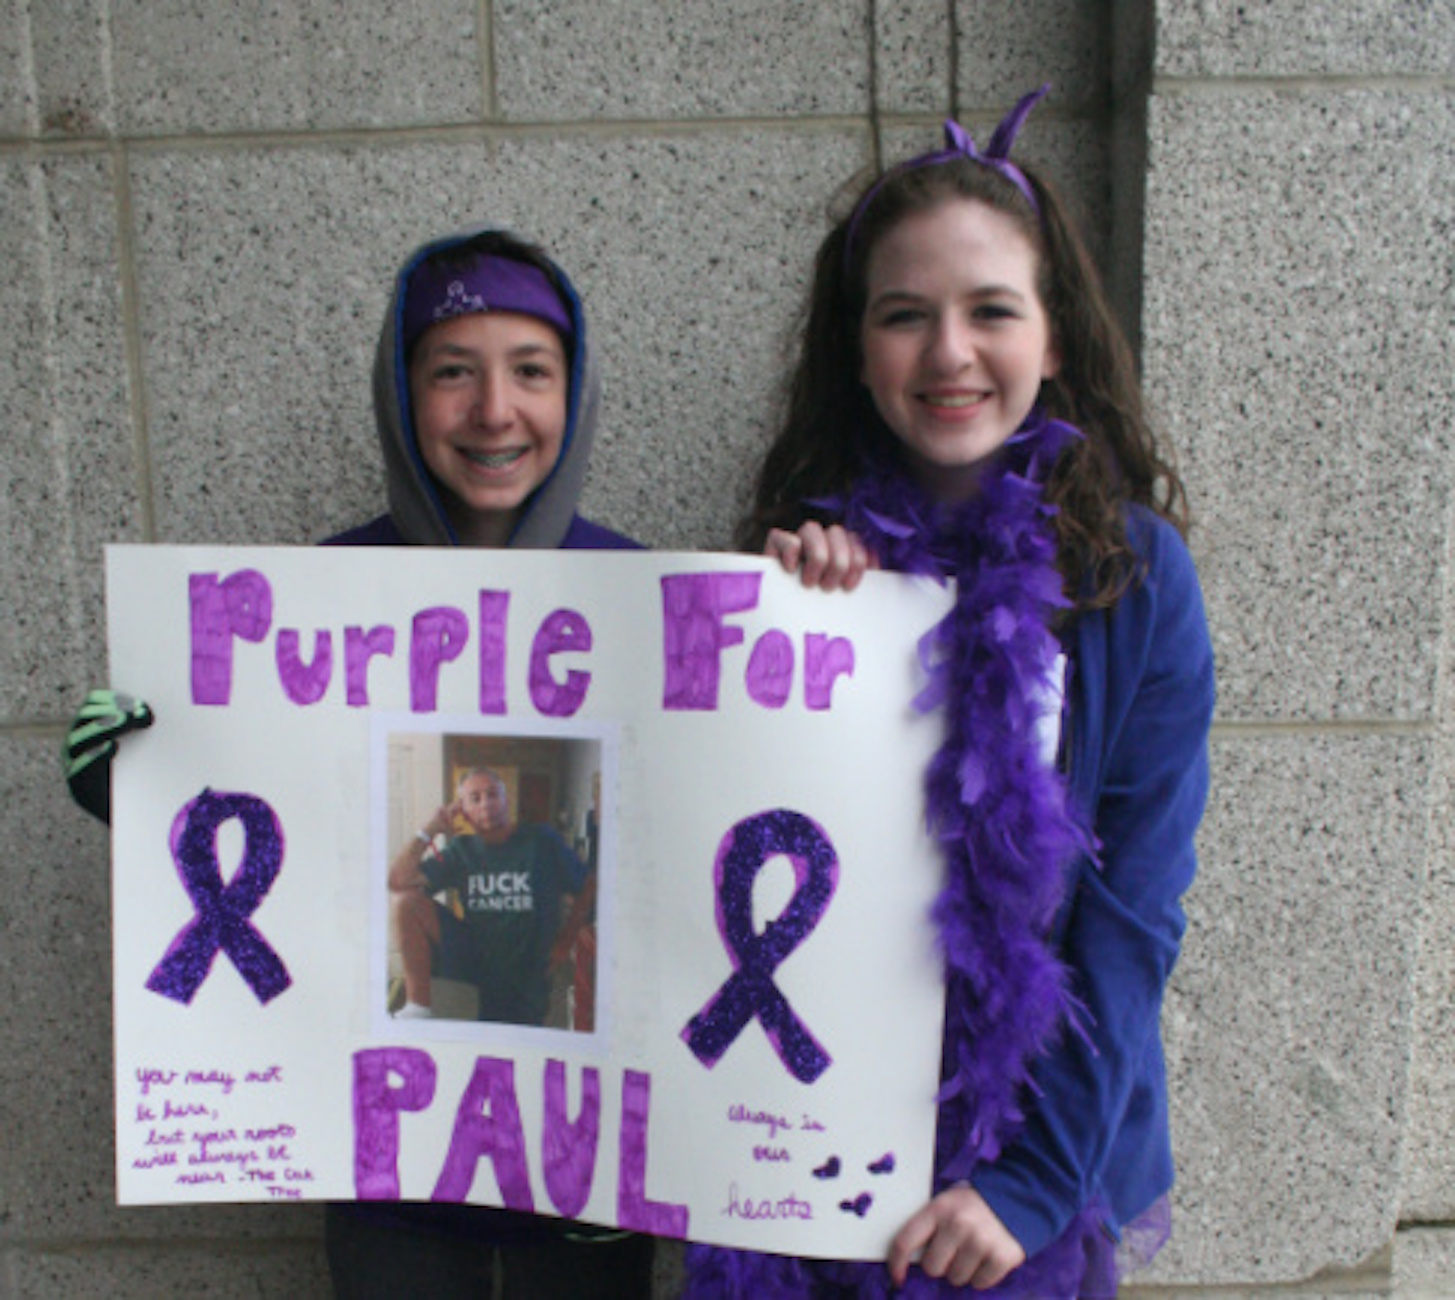 """Two people holding a handmade sign that says """"Purple for Paul"""" with a photo and purple ribbons"""